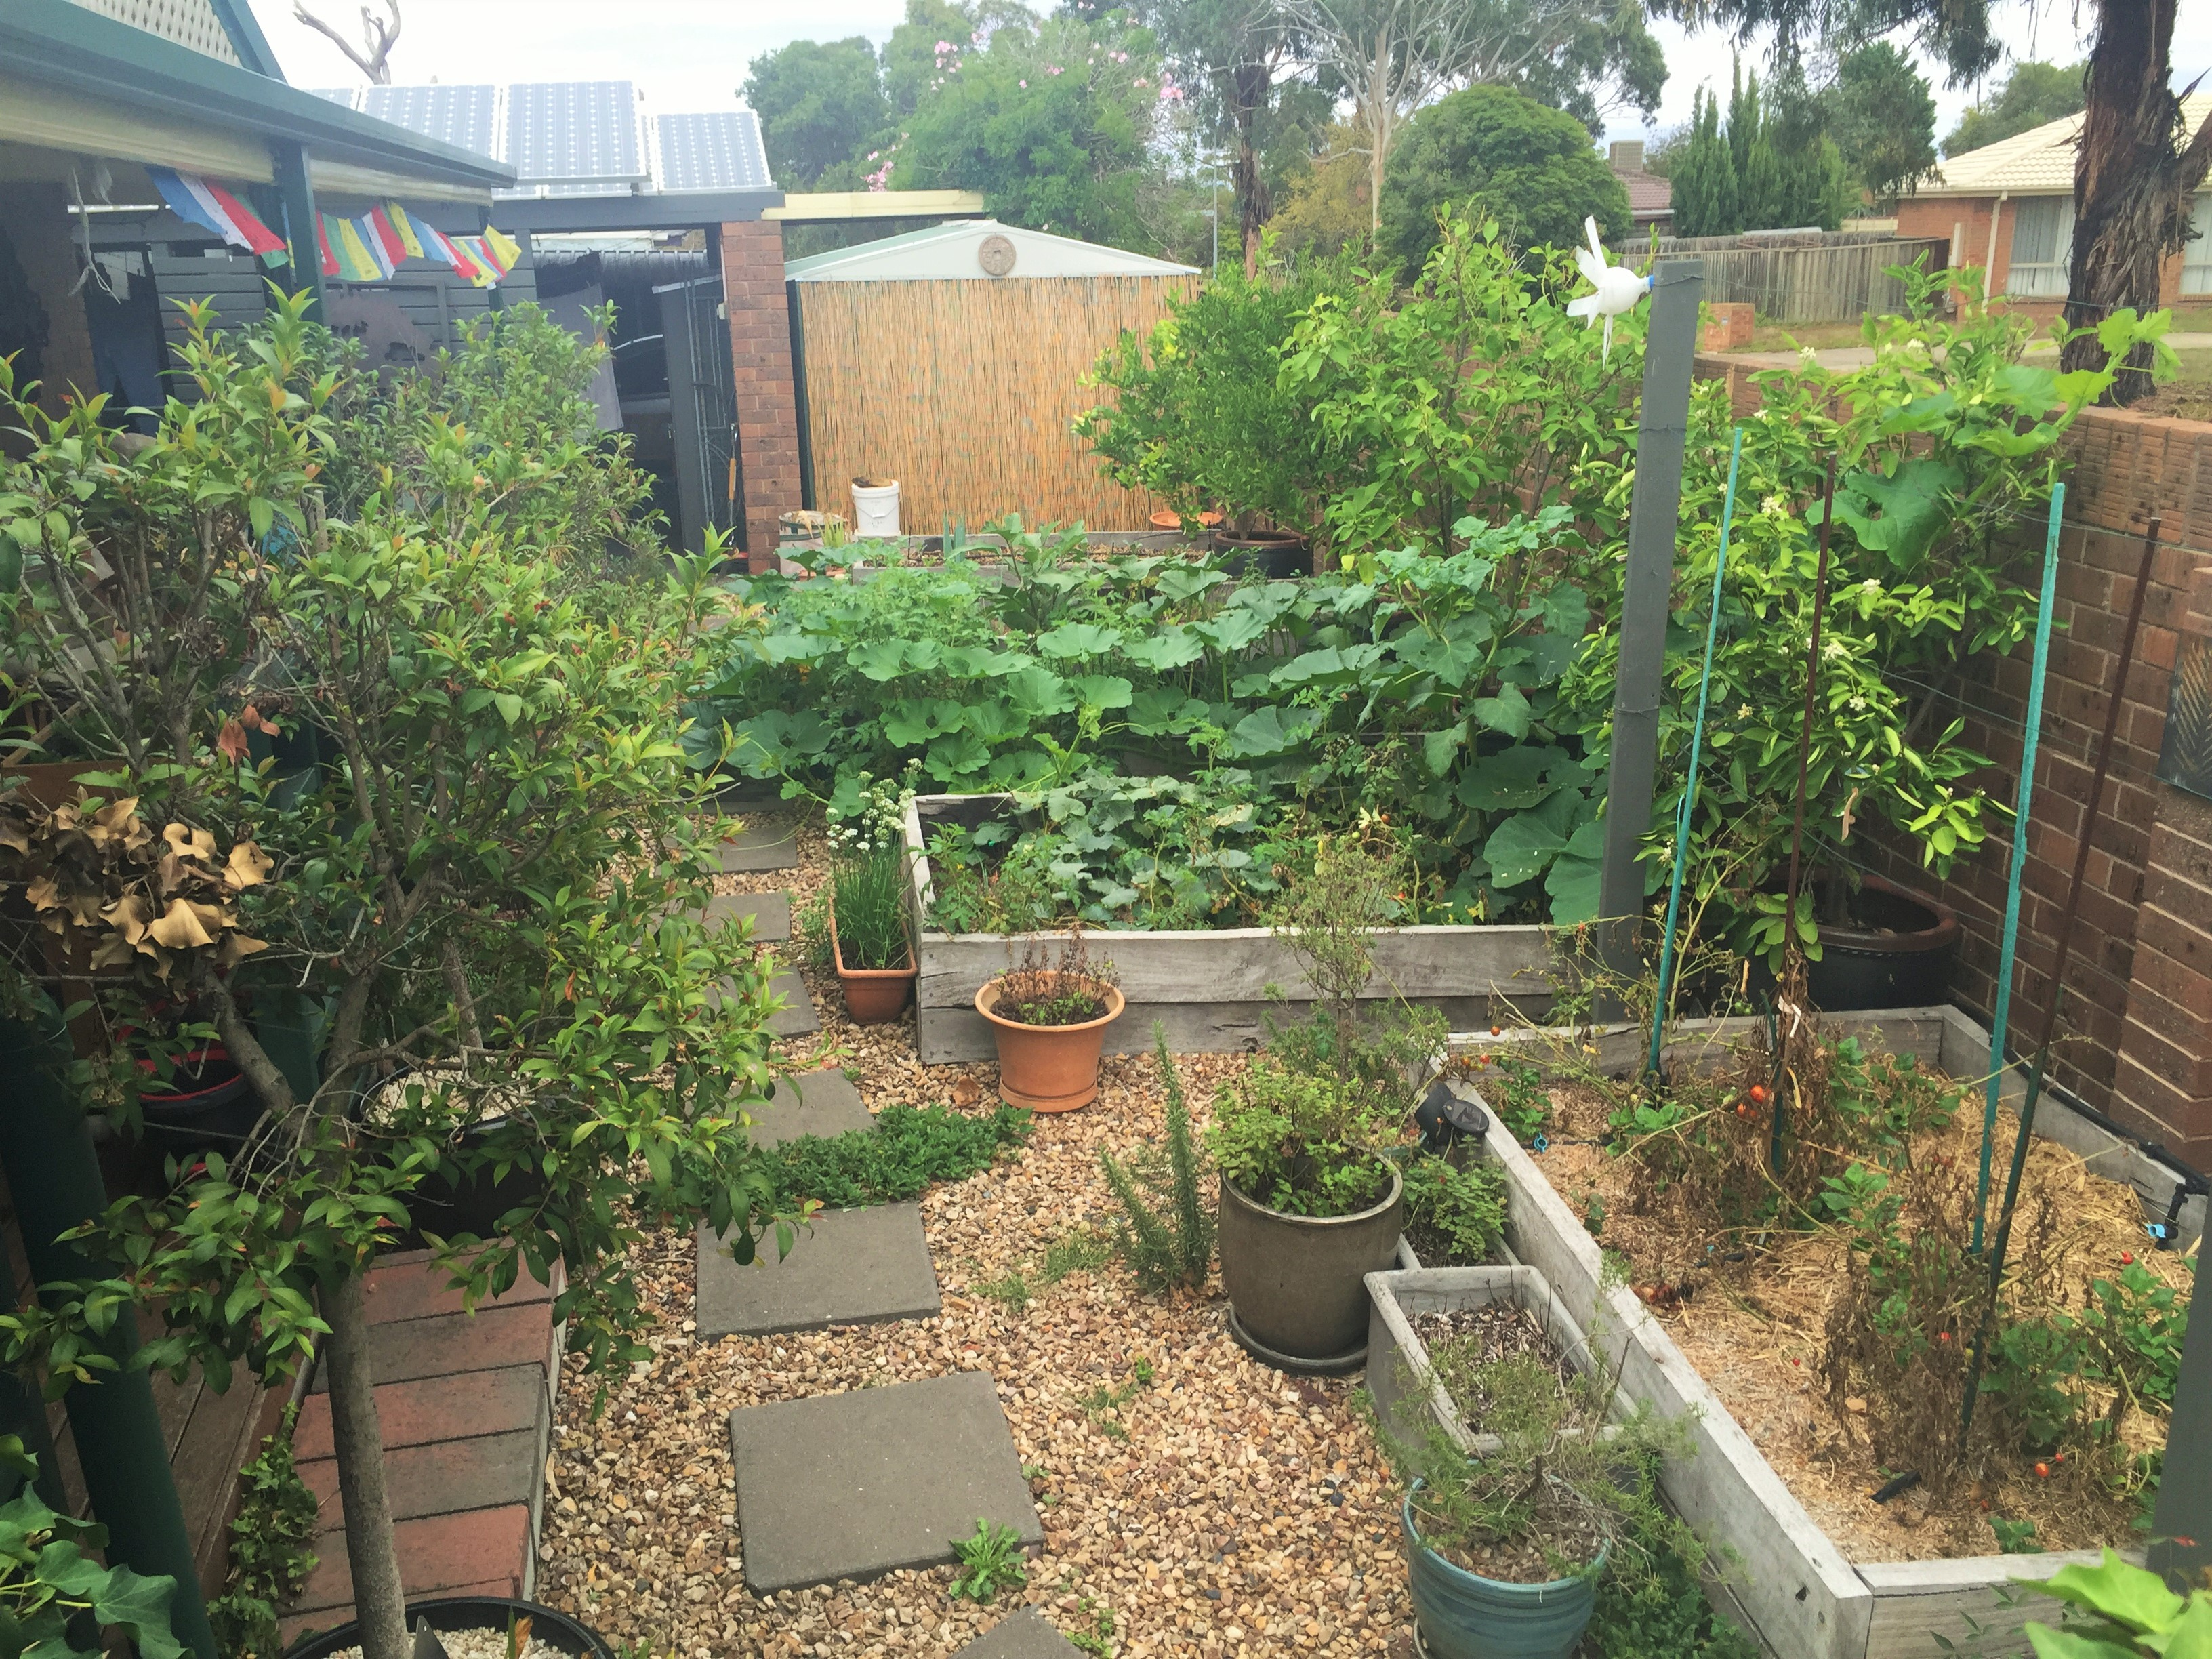 No dig vegetable gardens with raised garden beds - Autumn Garden 2016